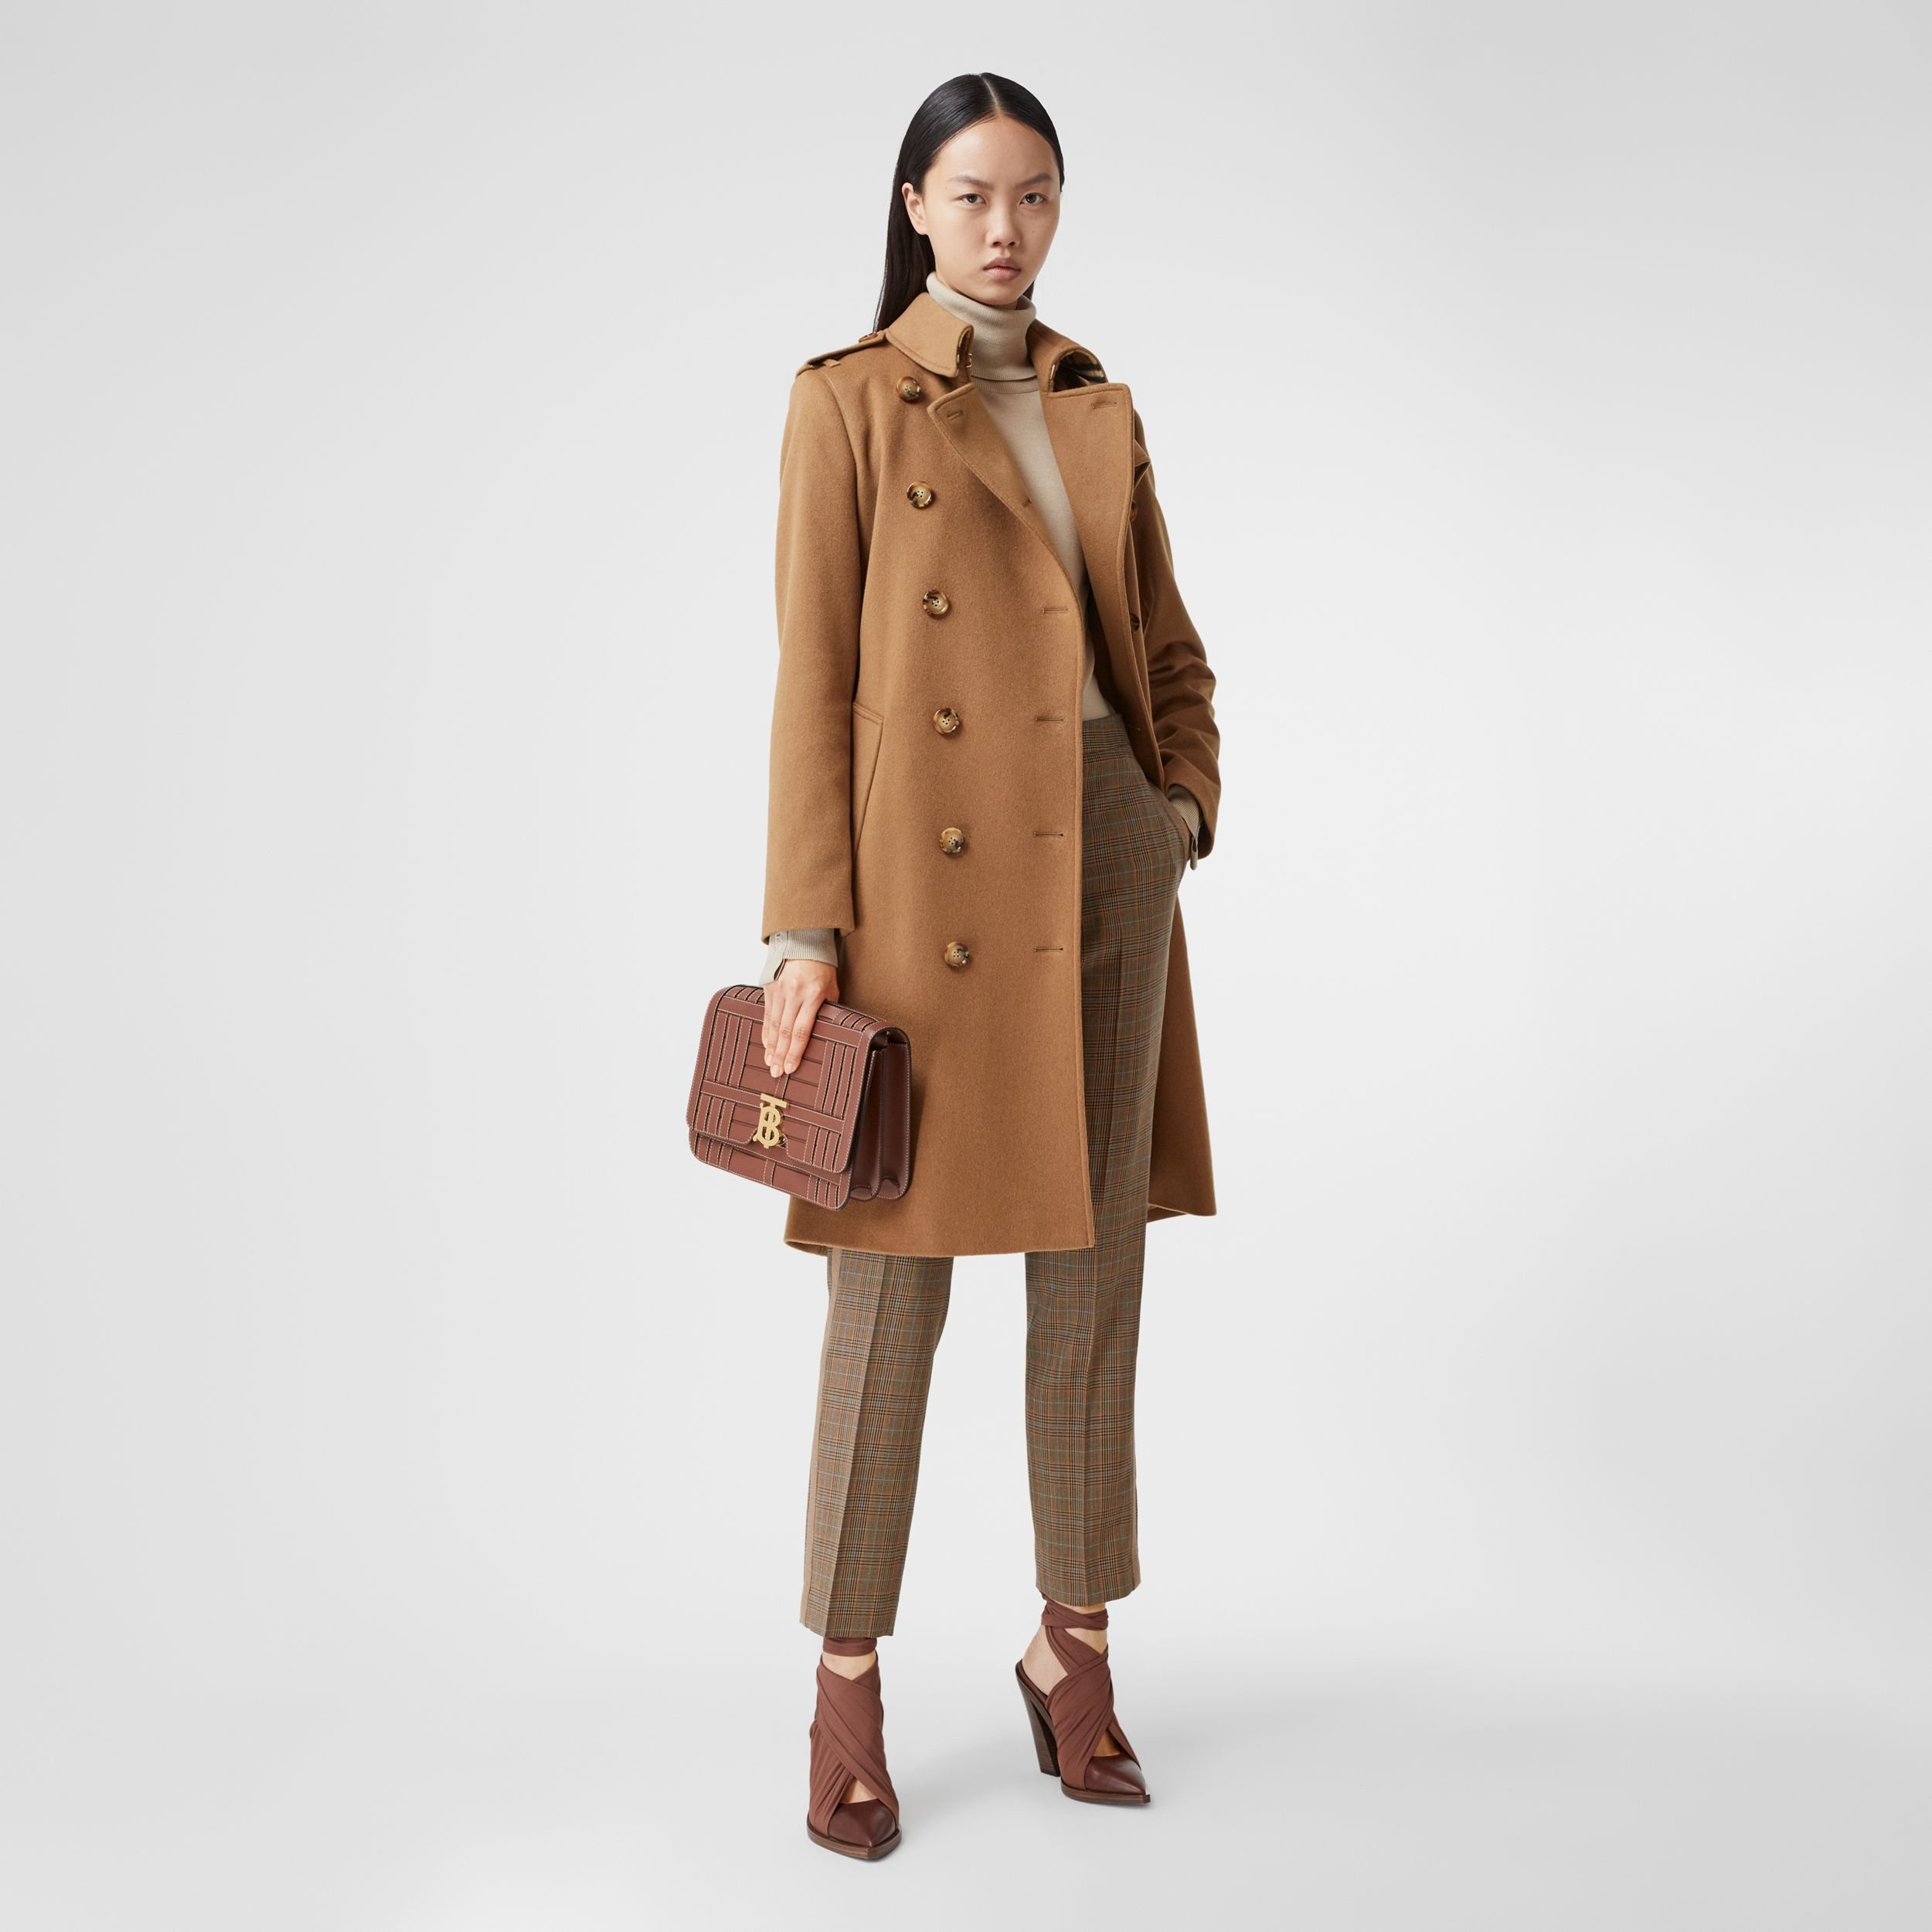 Cashmere Trench Coat in Bronze - Women | Burberry - 1